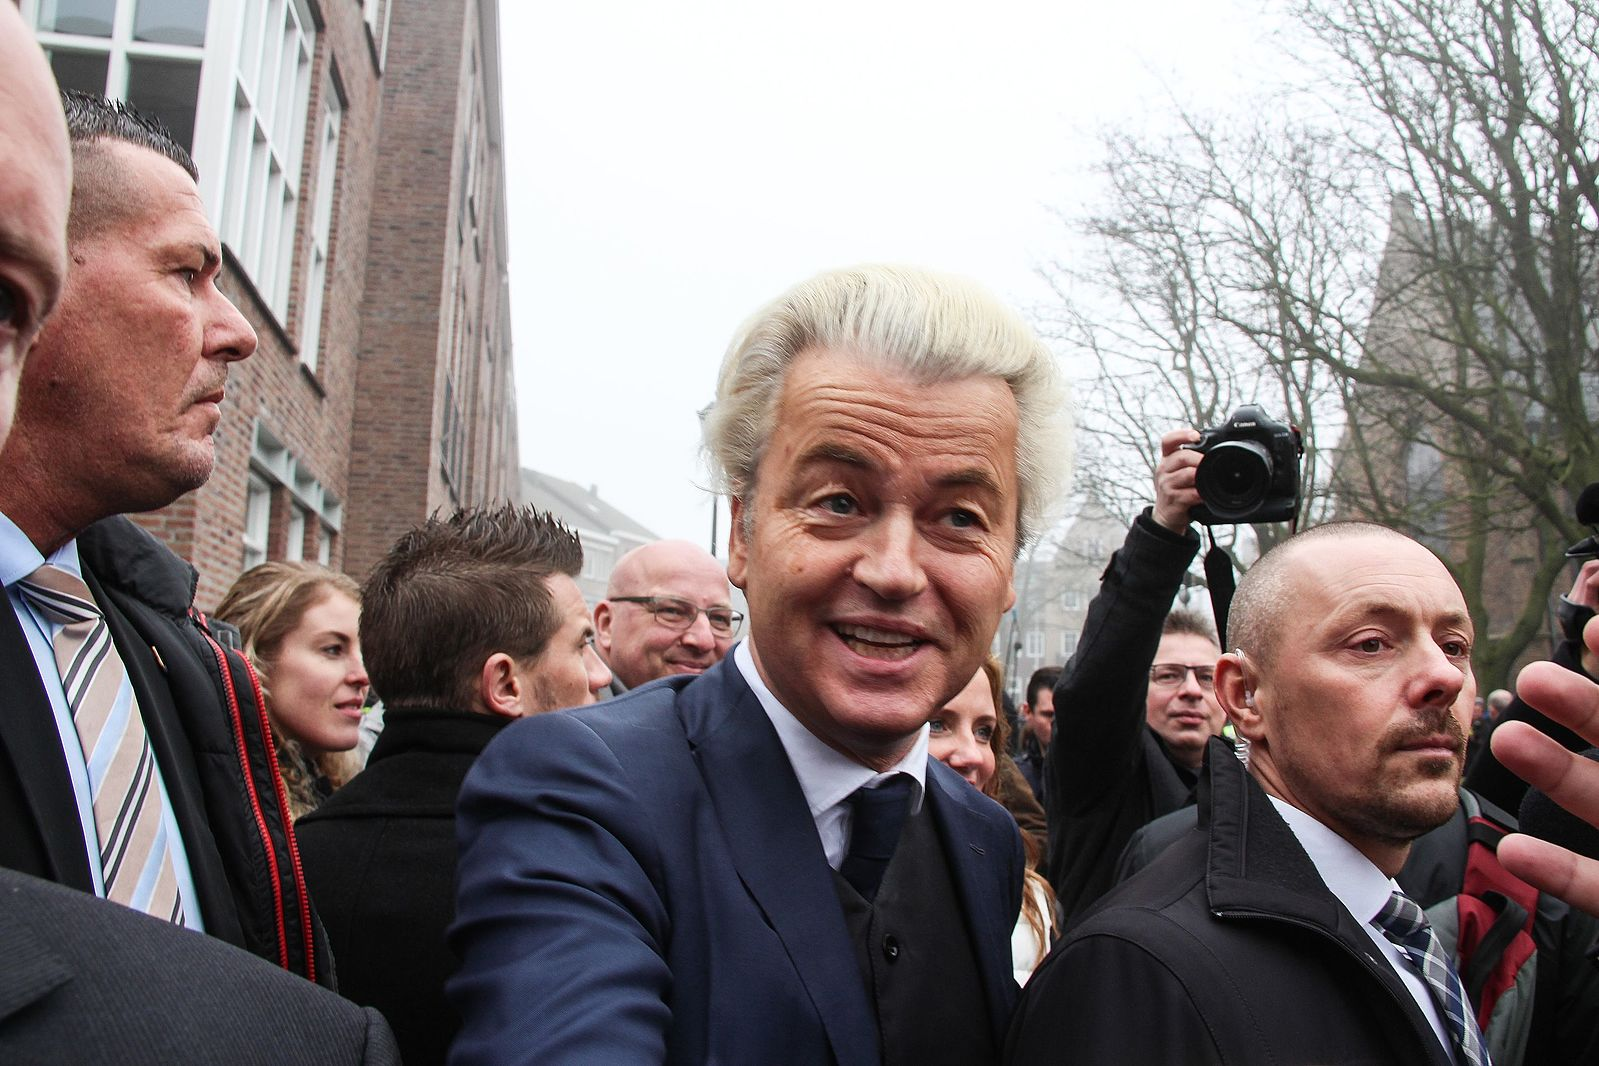 The Elections that will shape Europe #1: The Netherlands